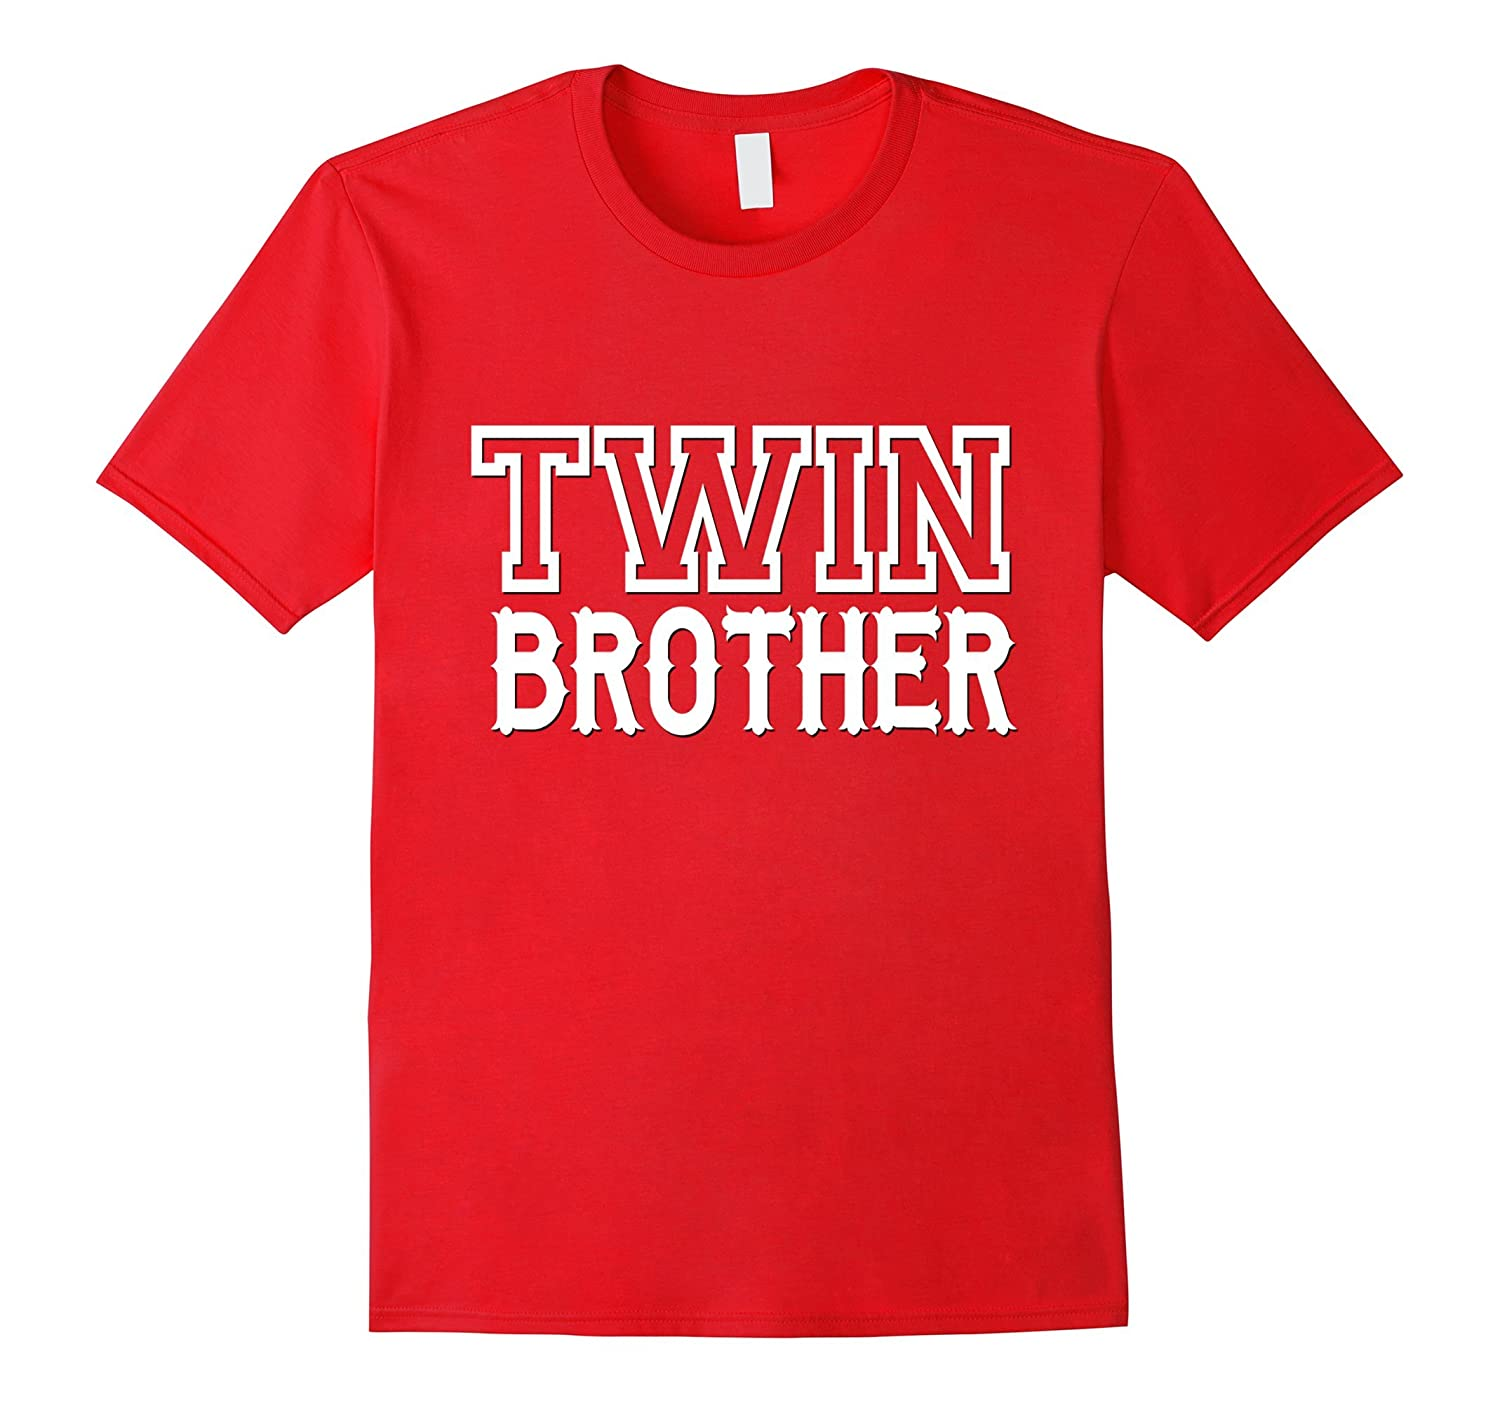 Twin Brother Shirt Matching Family Kids Son Boys Gift-CD